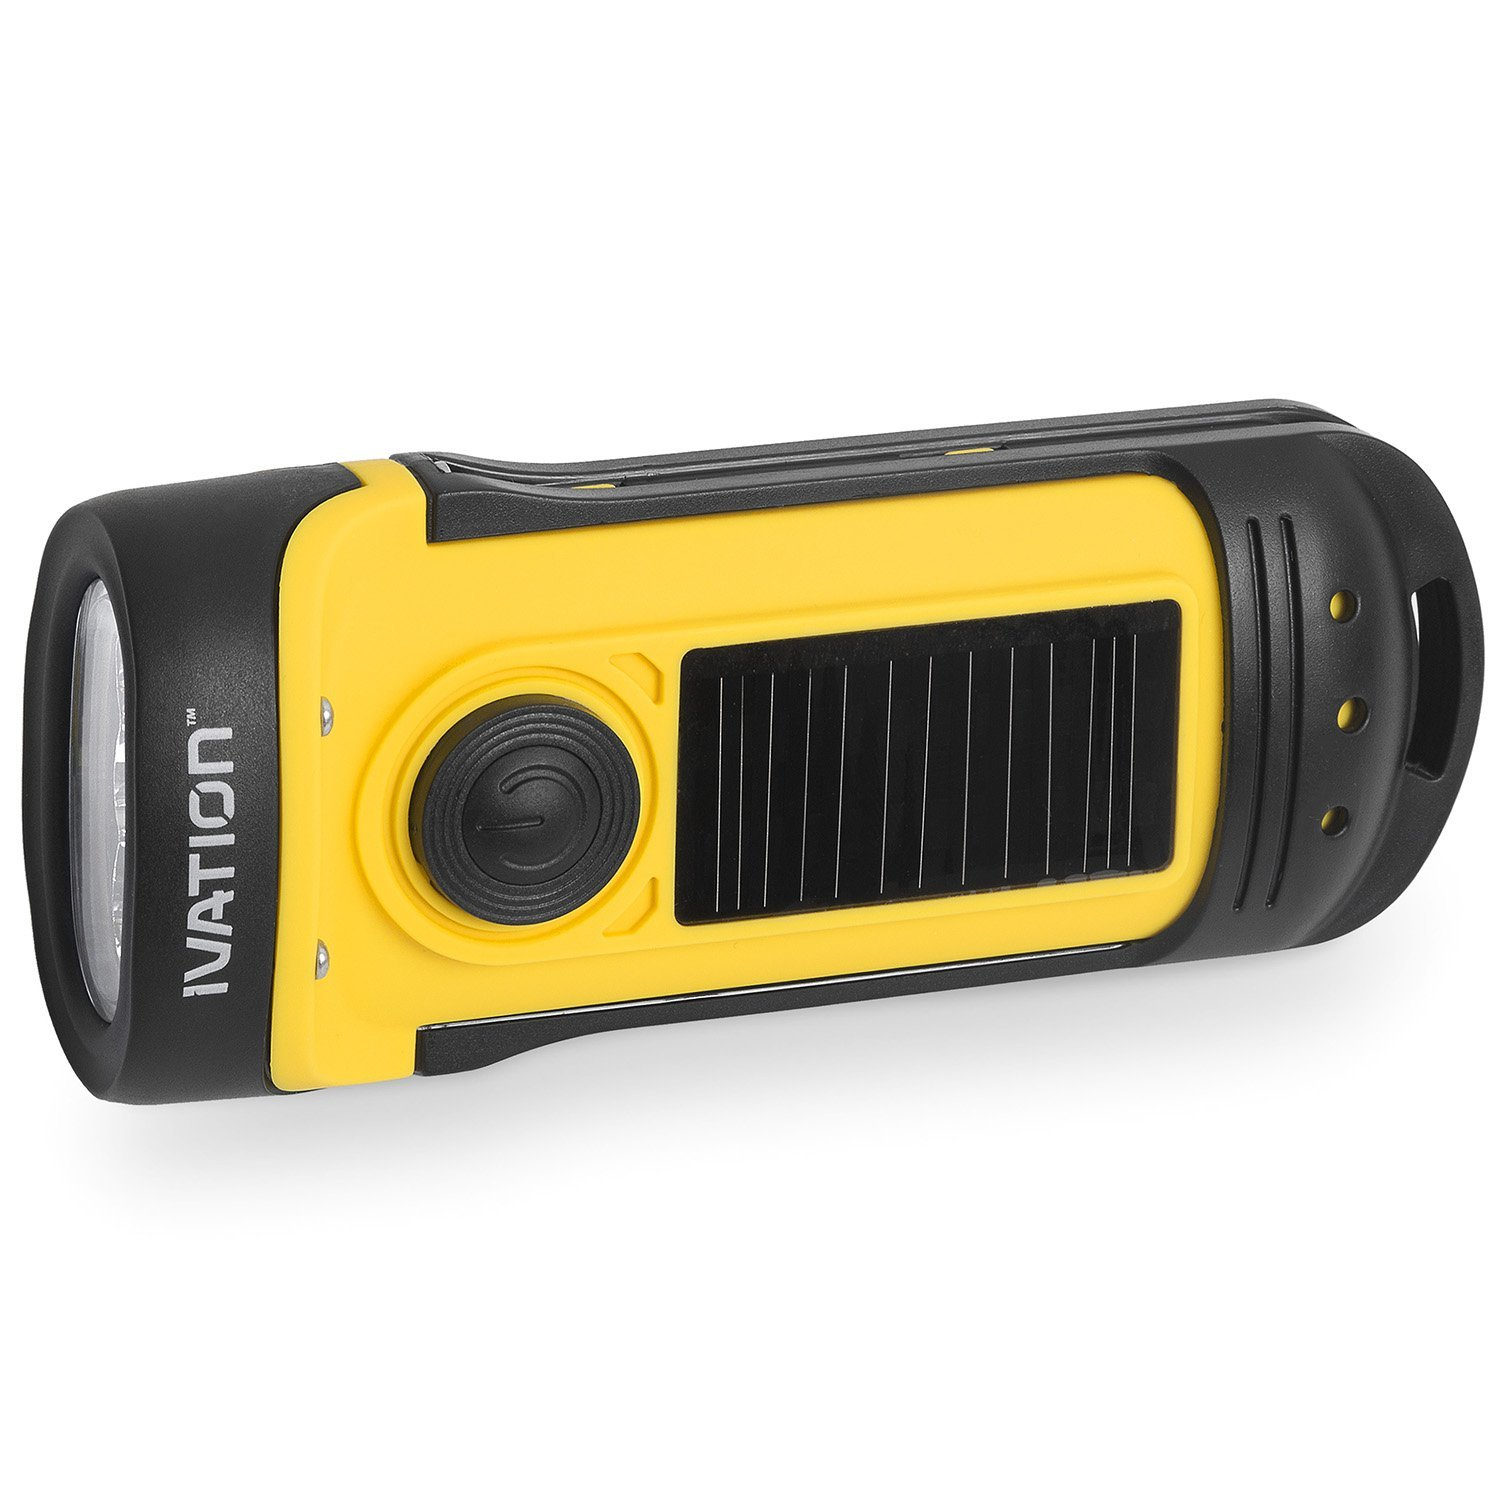 solar flashlight best options under $20 ivation rechargeable waterproof hand cranking